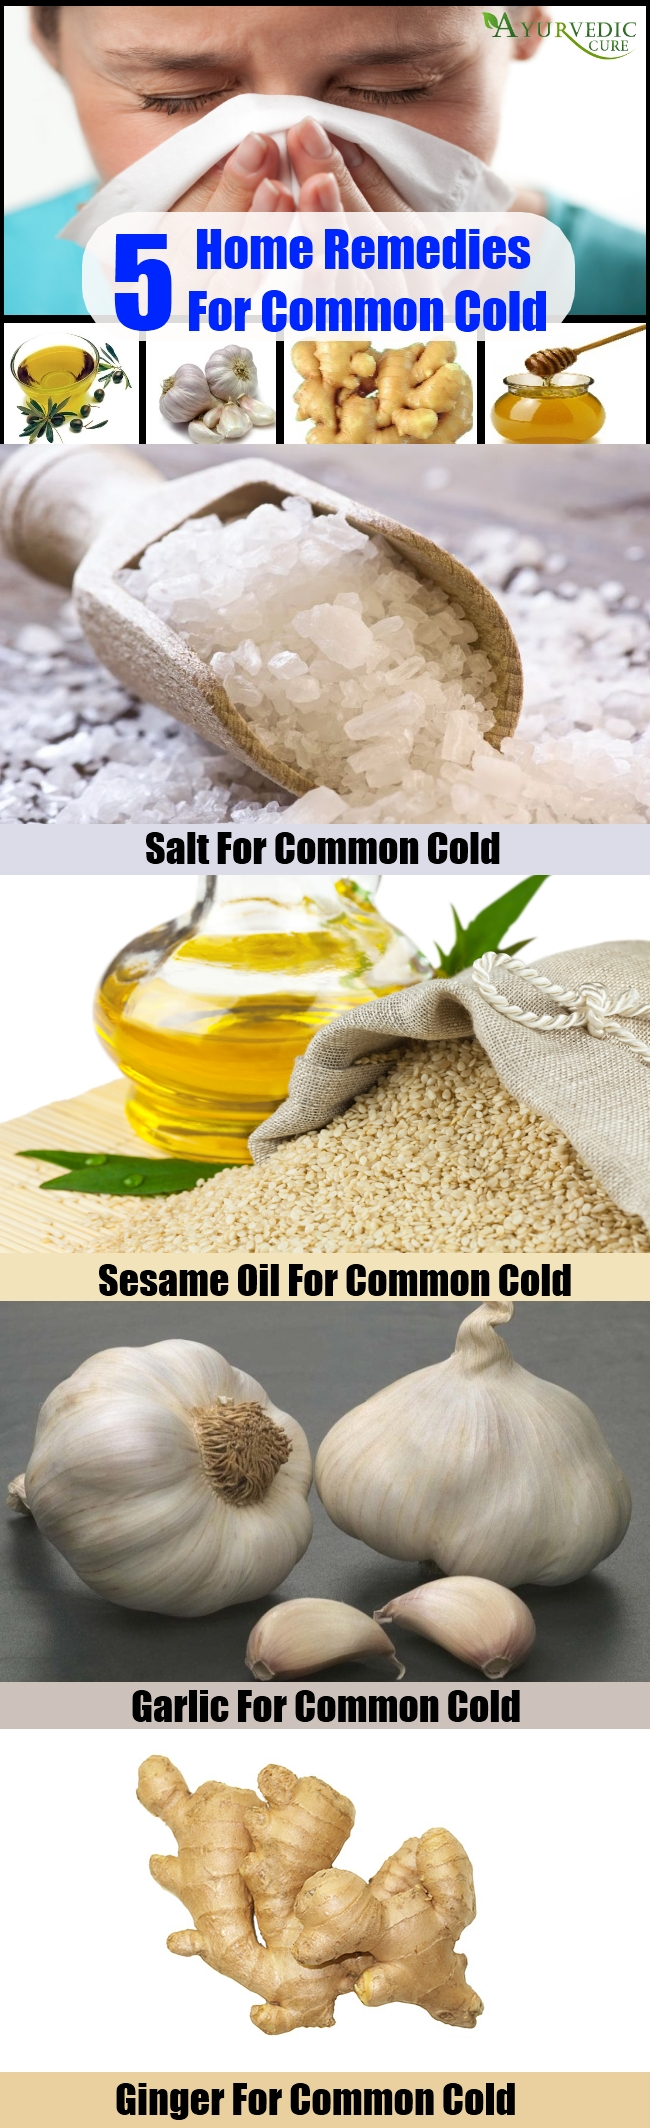 Top 5 Home Remedies For Common Cold